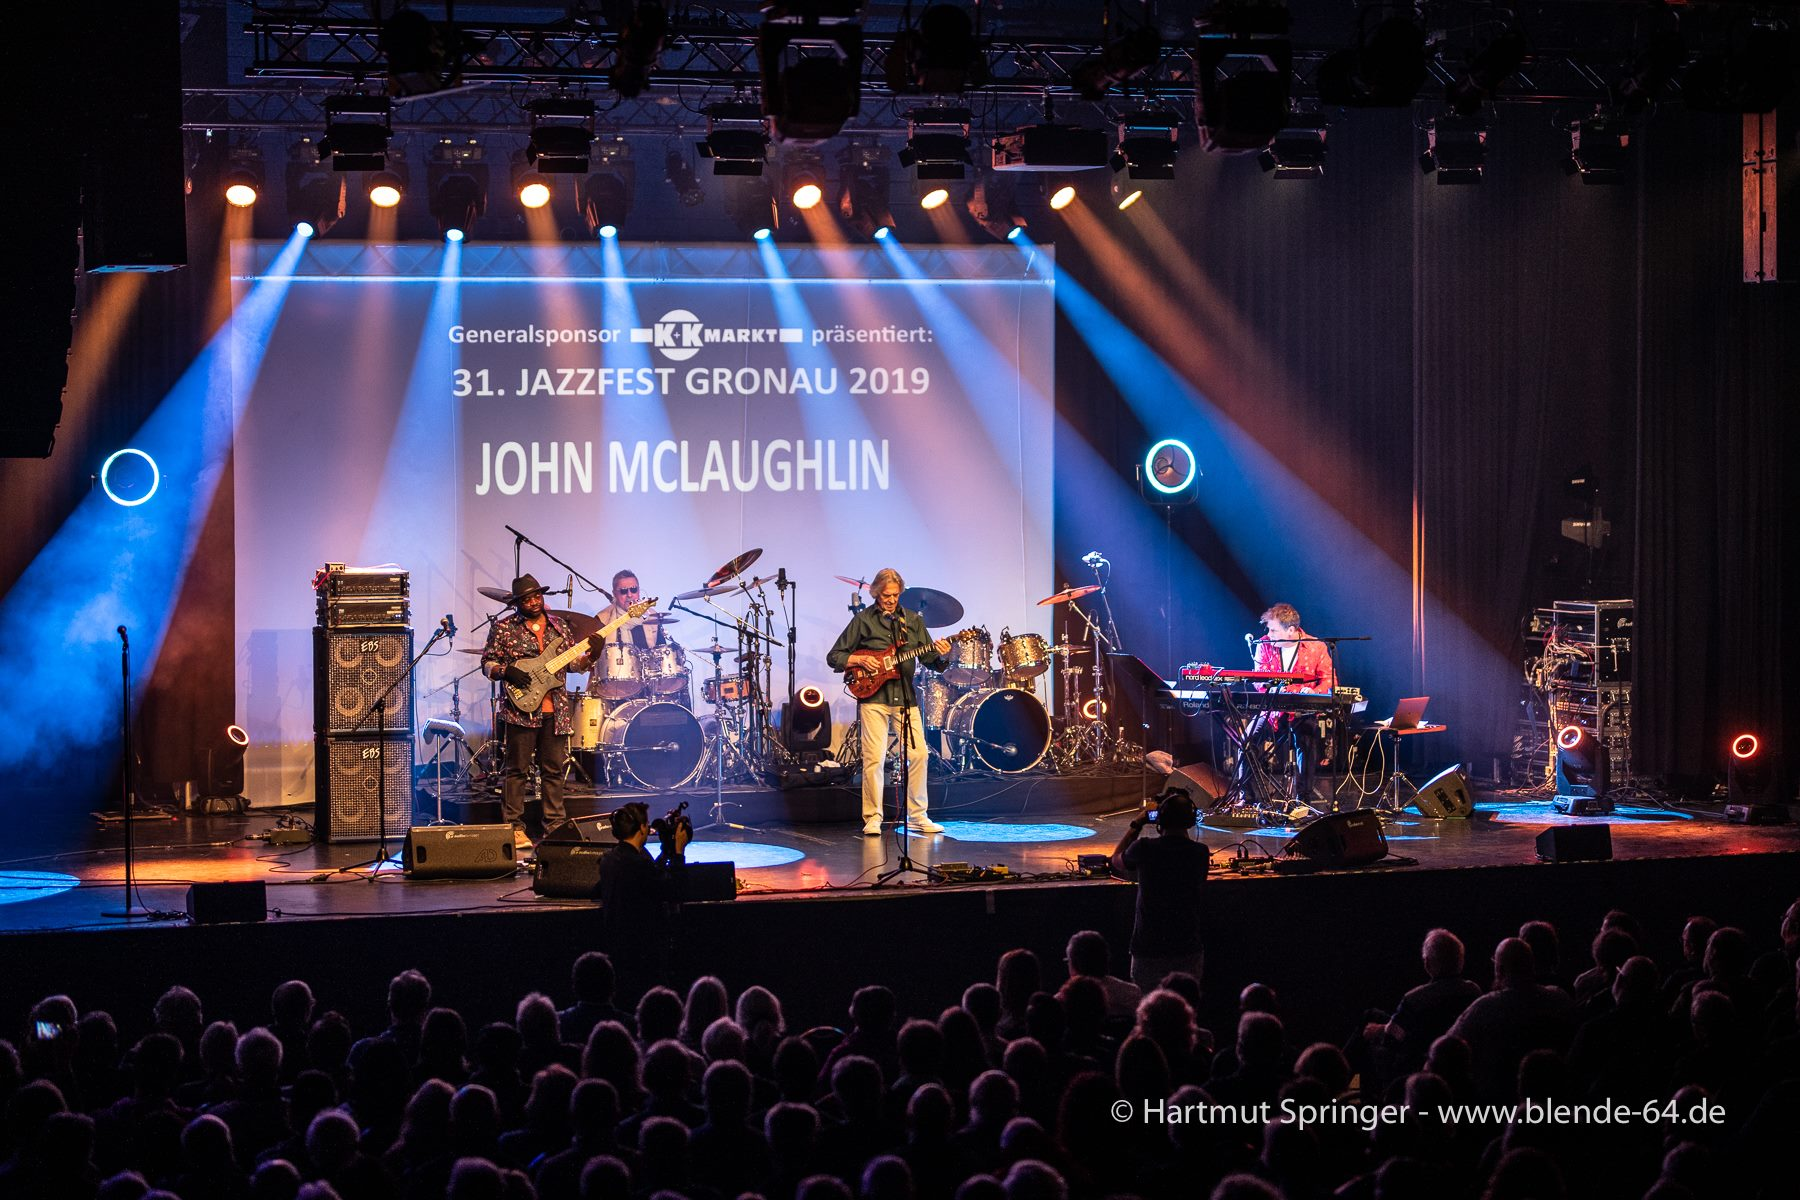 JohnMcLaughlinAndThe4thDimension2019-04-28GronauGermany (1).jpg